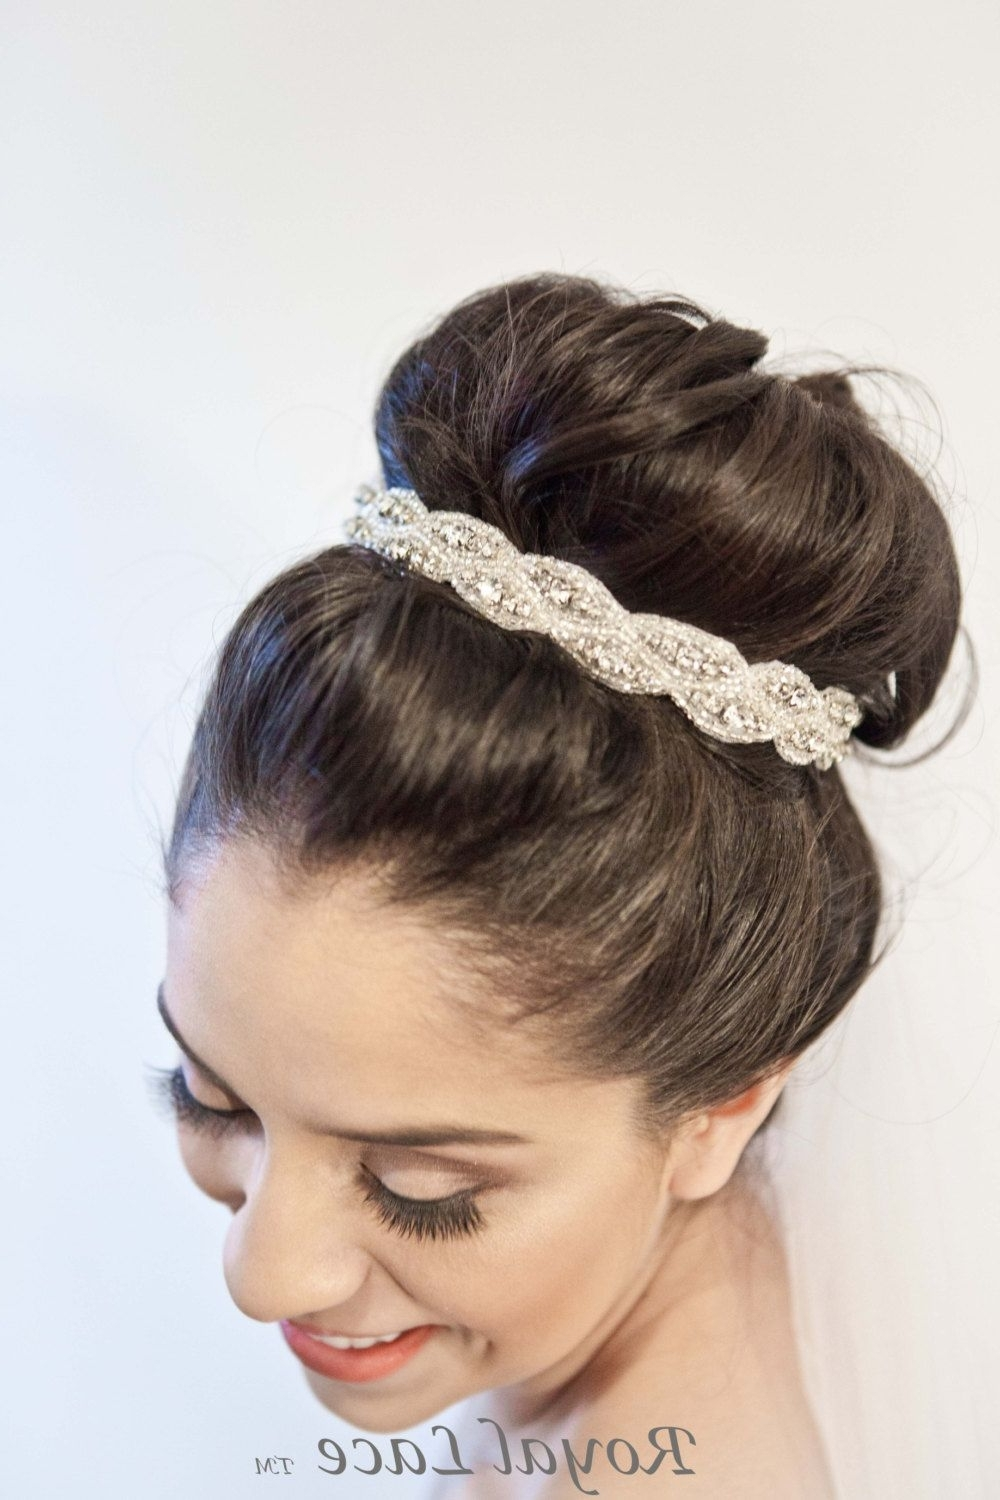 Wedding Headband, Wedding Hair Accessory, Crystals, Beads, Headband With Regard To Trendy Large High Bun With A Headband (View 13 of 15)